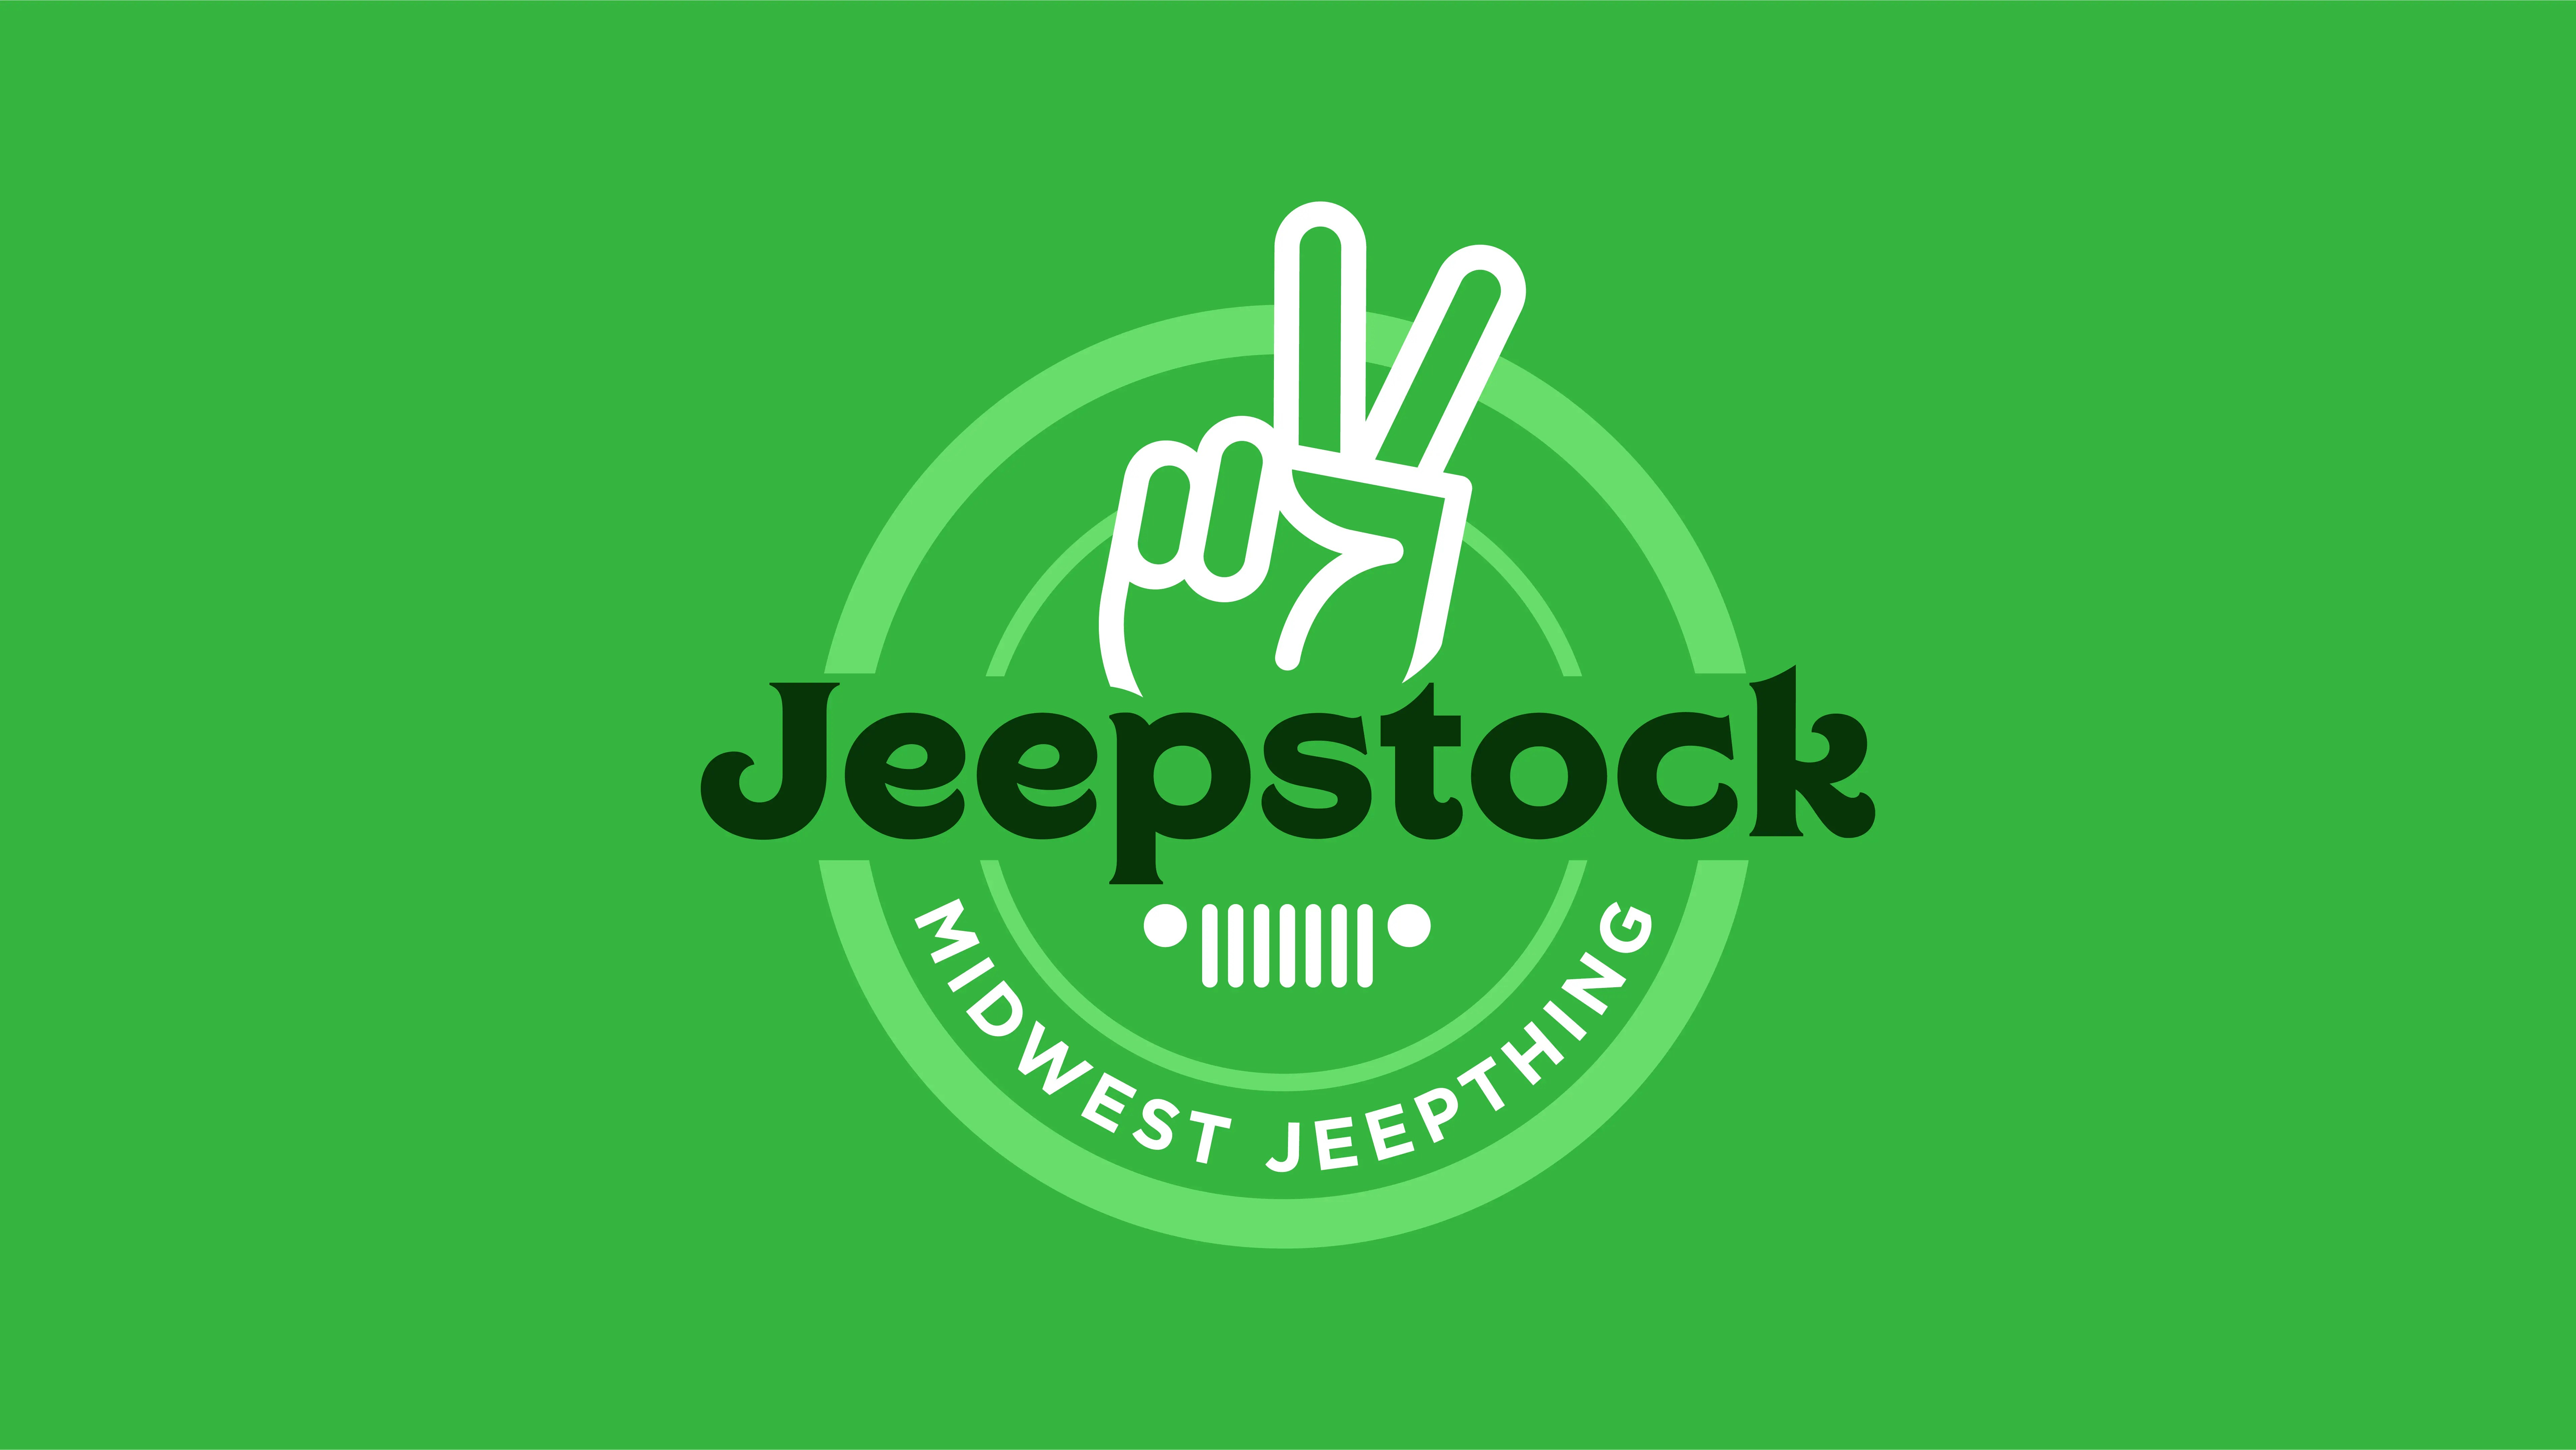 Midwest Jeepthing presents Jeepstock 2020